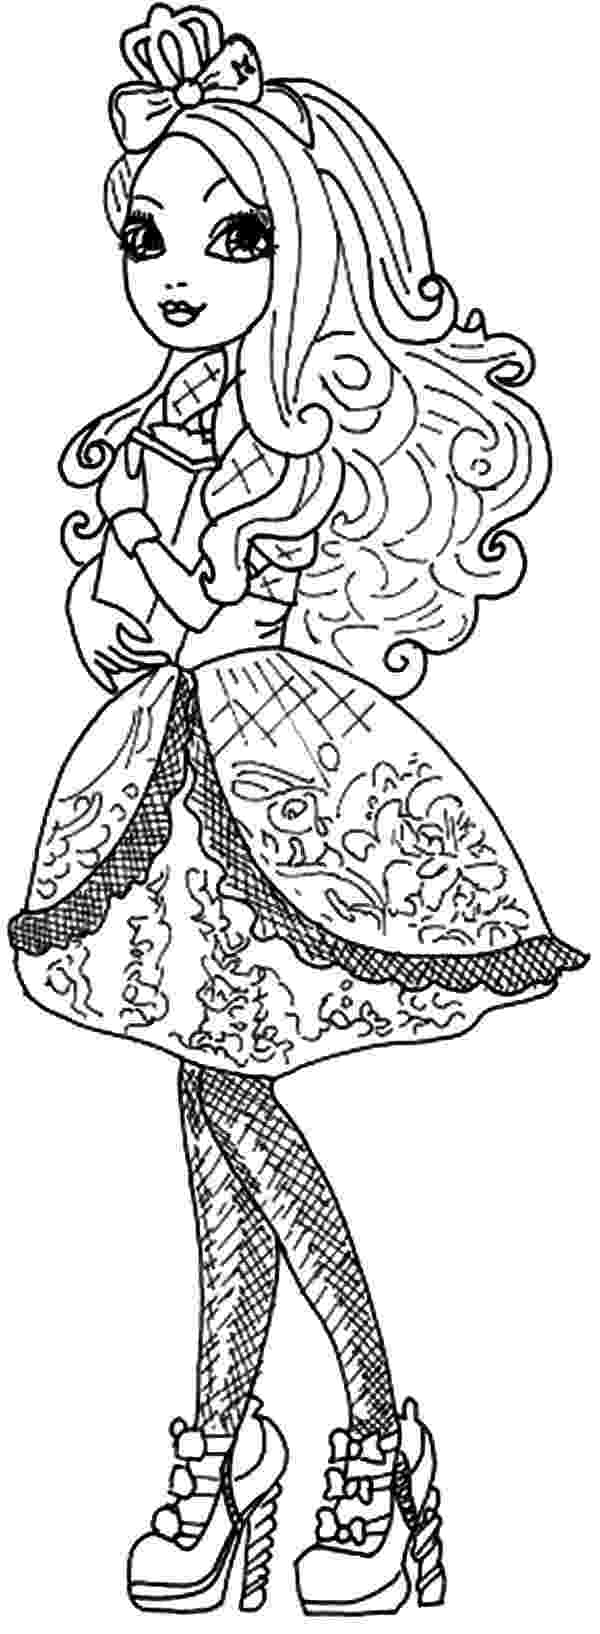 ever after high coloring sheets beautiful raven queen ever after high coloring pages sheets after ever high coloring